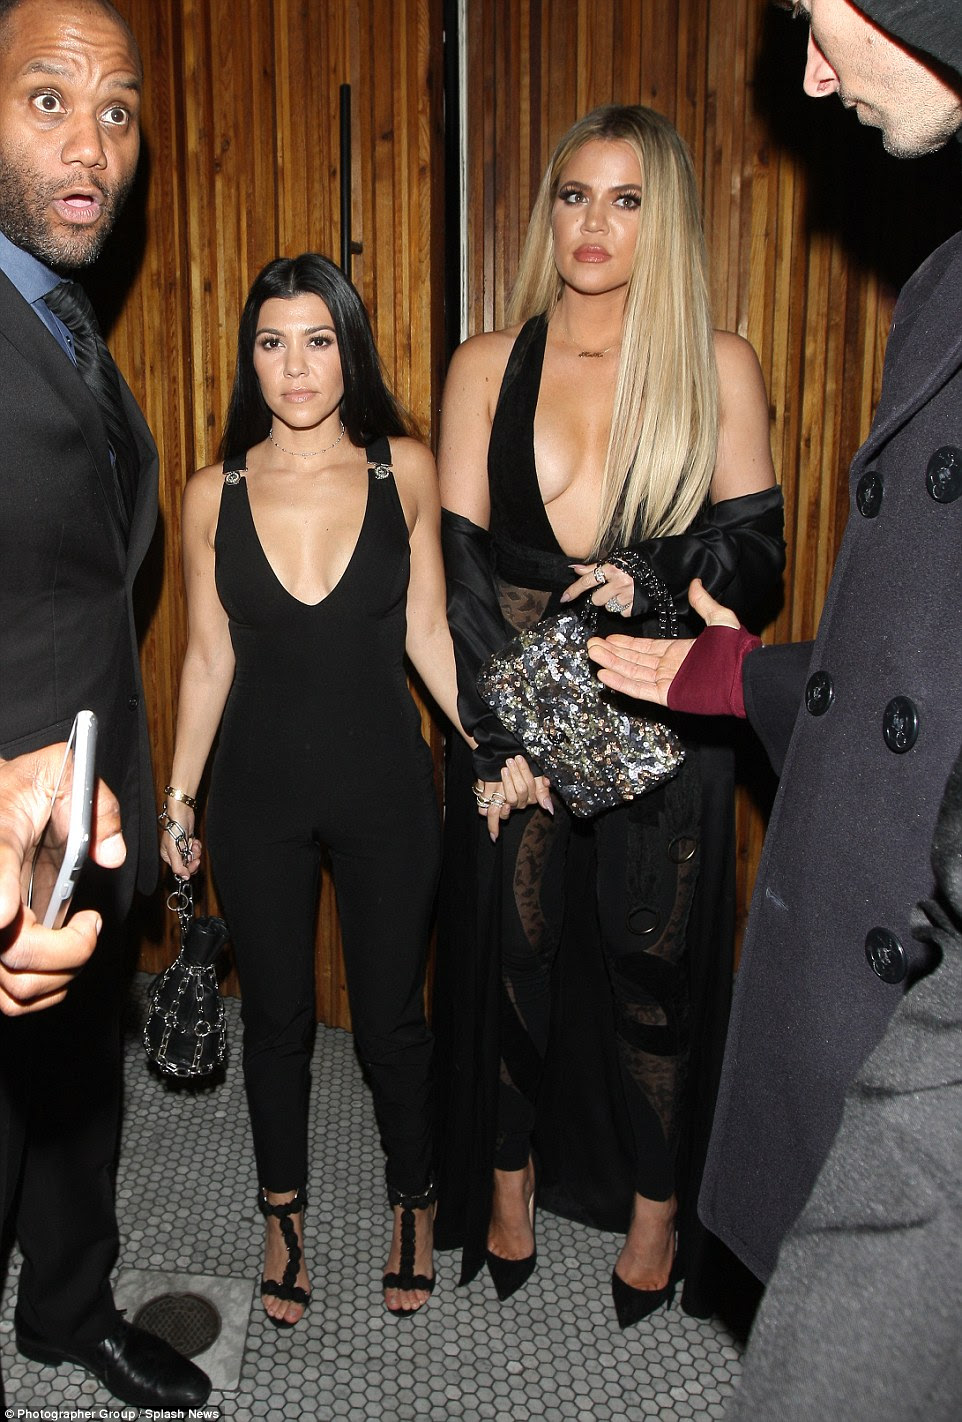 Mixing it up: Kourtney (left) and Khloe Kardashian showed off their height difference as they posed for snaps outside Gigi Hadid's 21st birthday bash at The Nice Guy in West Hollywood on Thursday night